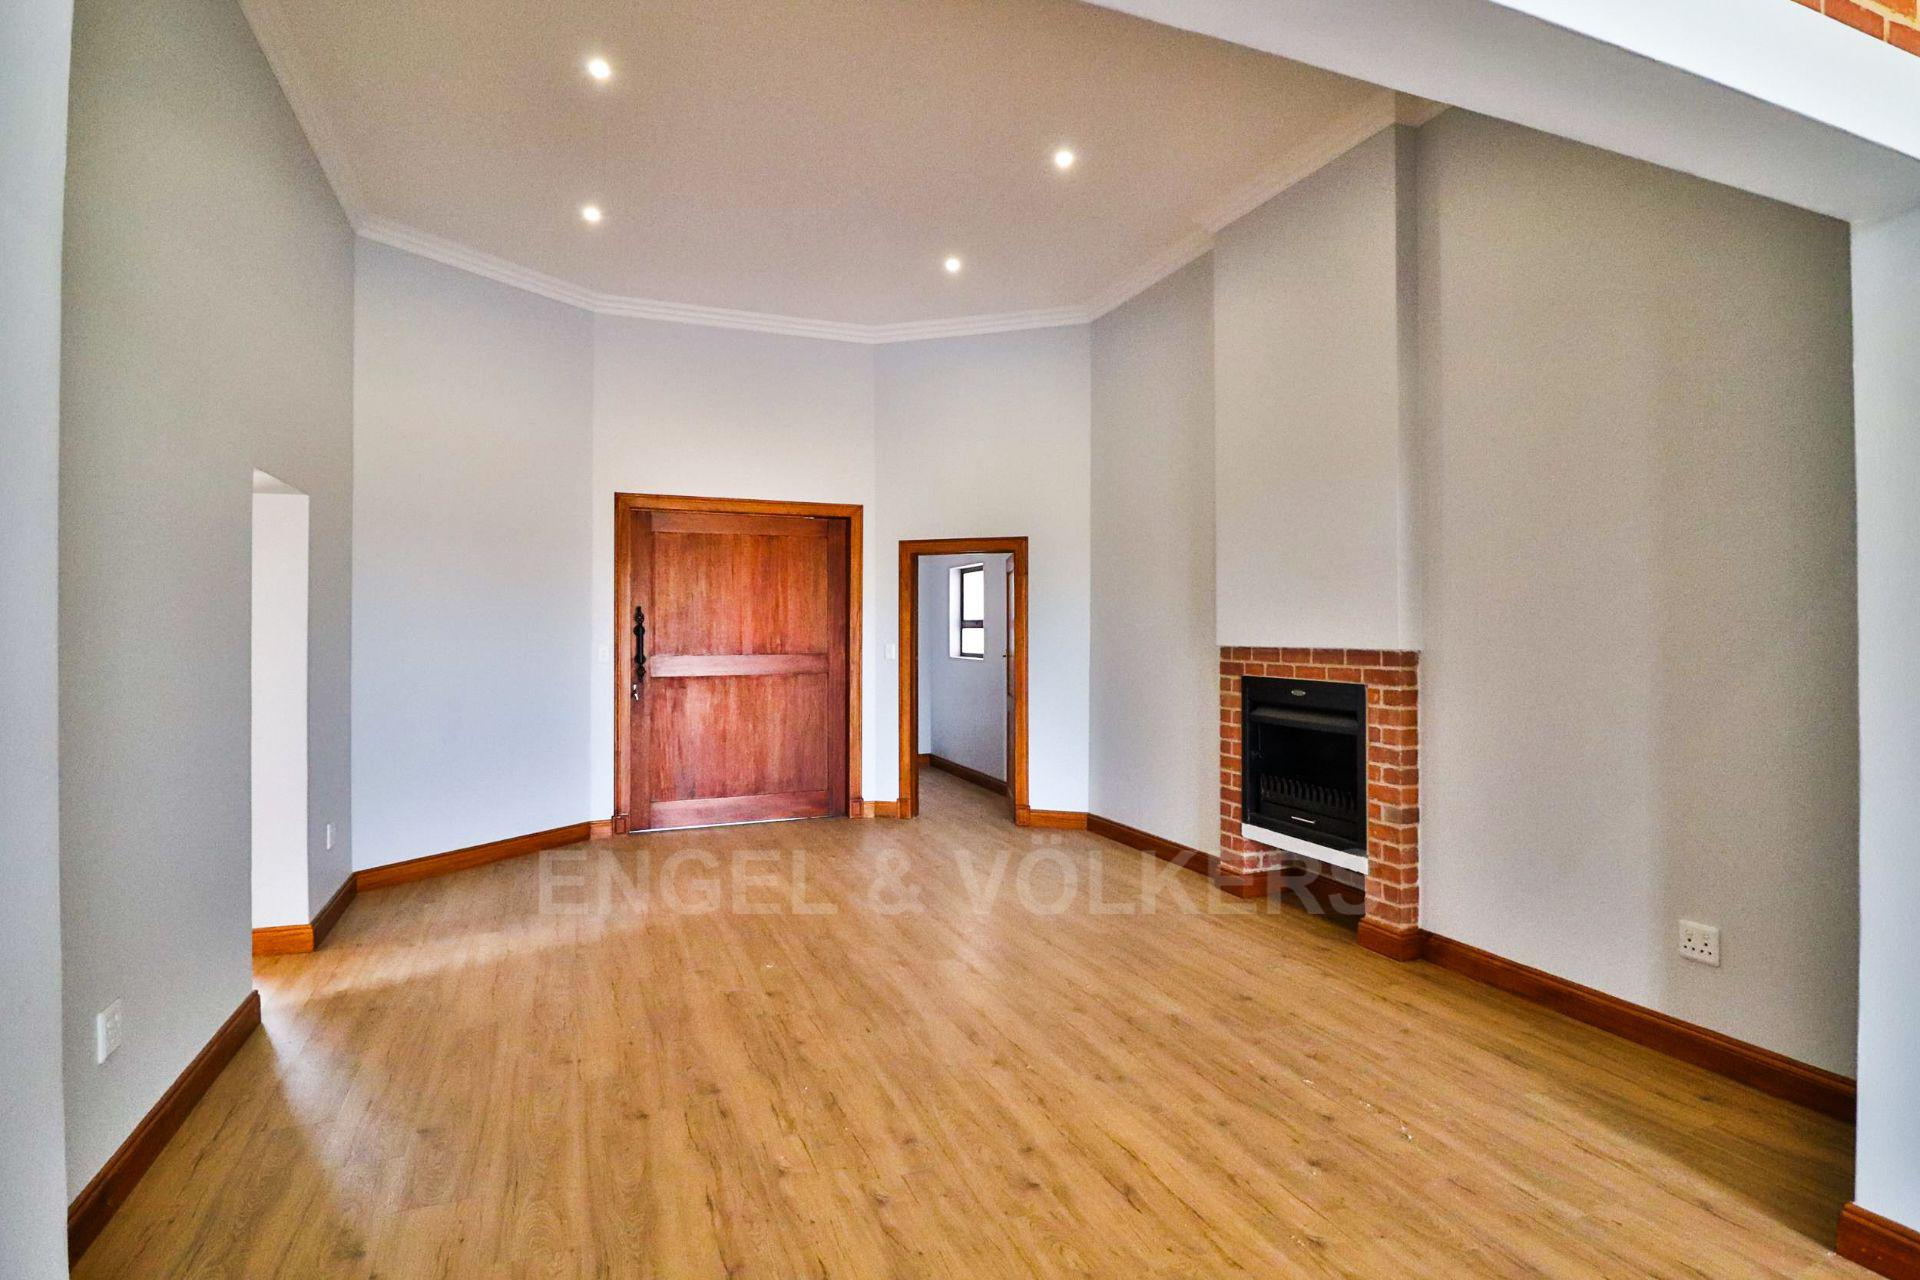 House in Landsmeer - Large lounge with fireplace